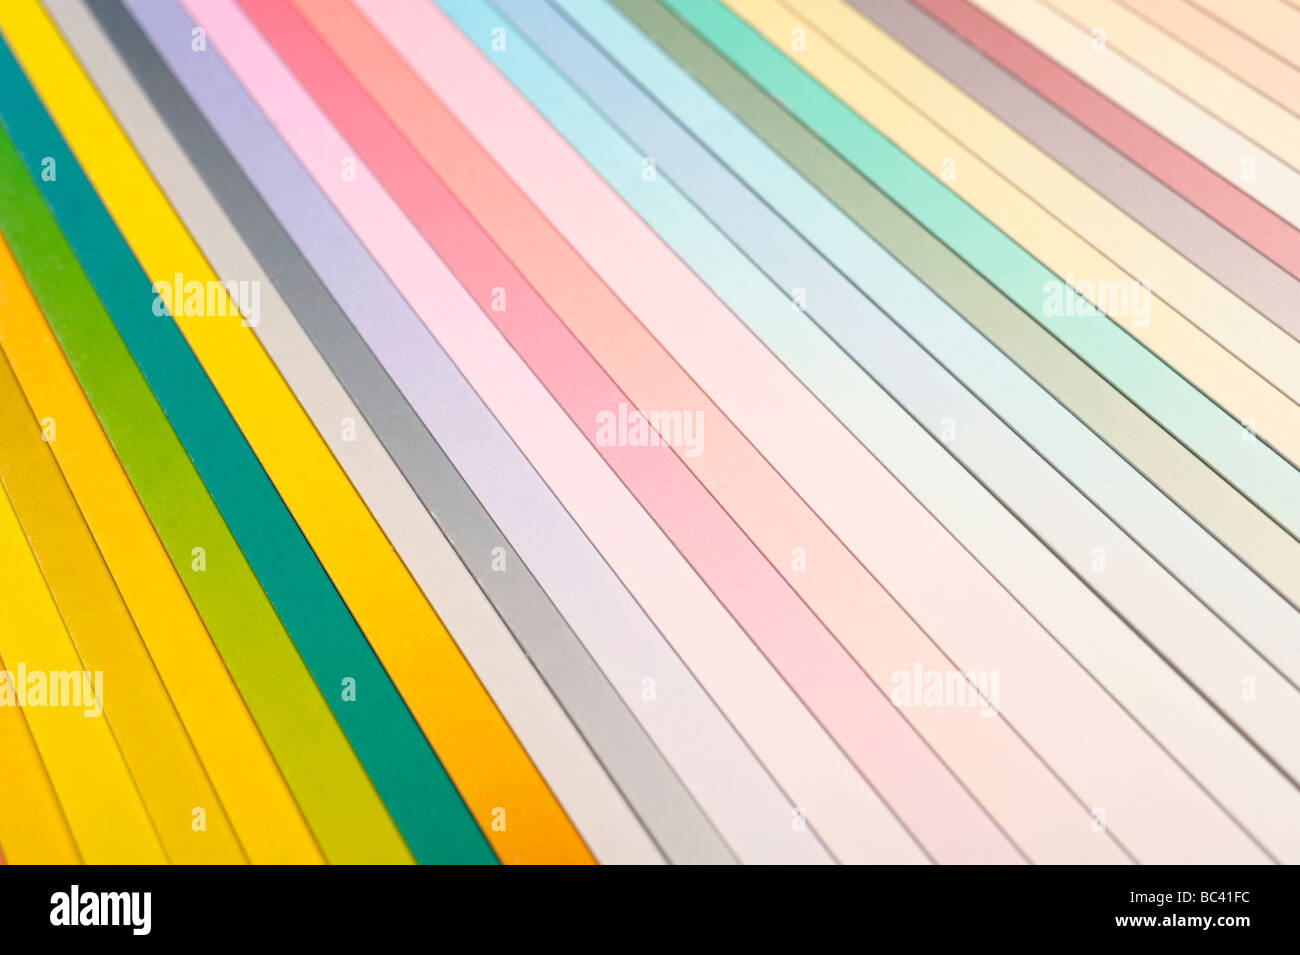 Abstract coloured paper - Stock Image